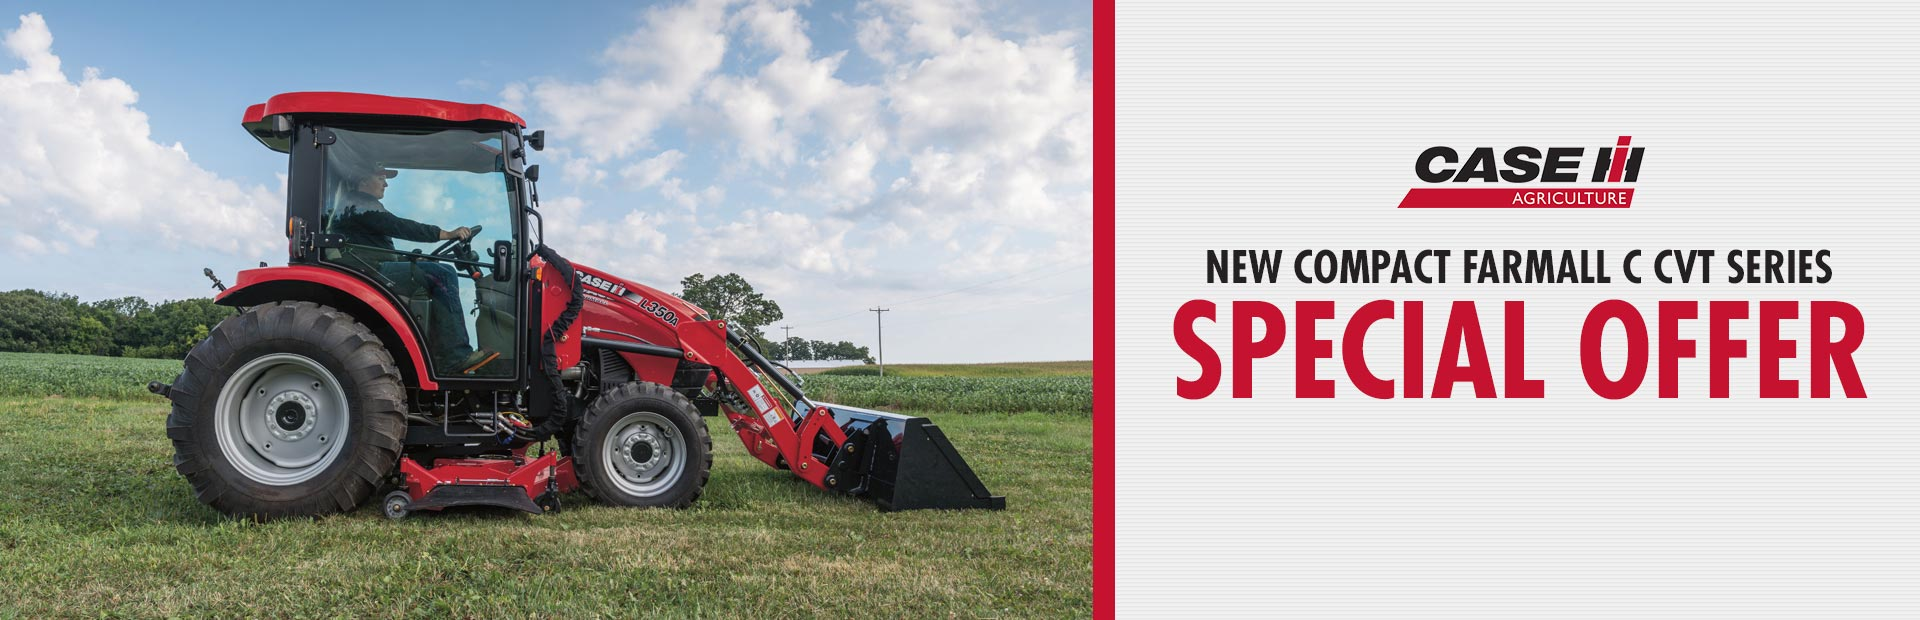 Case IH: New Compact Farmall C CVT Series Special Offer